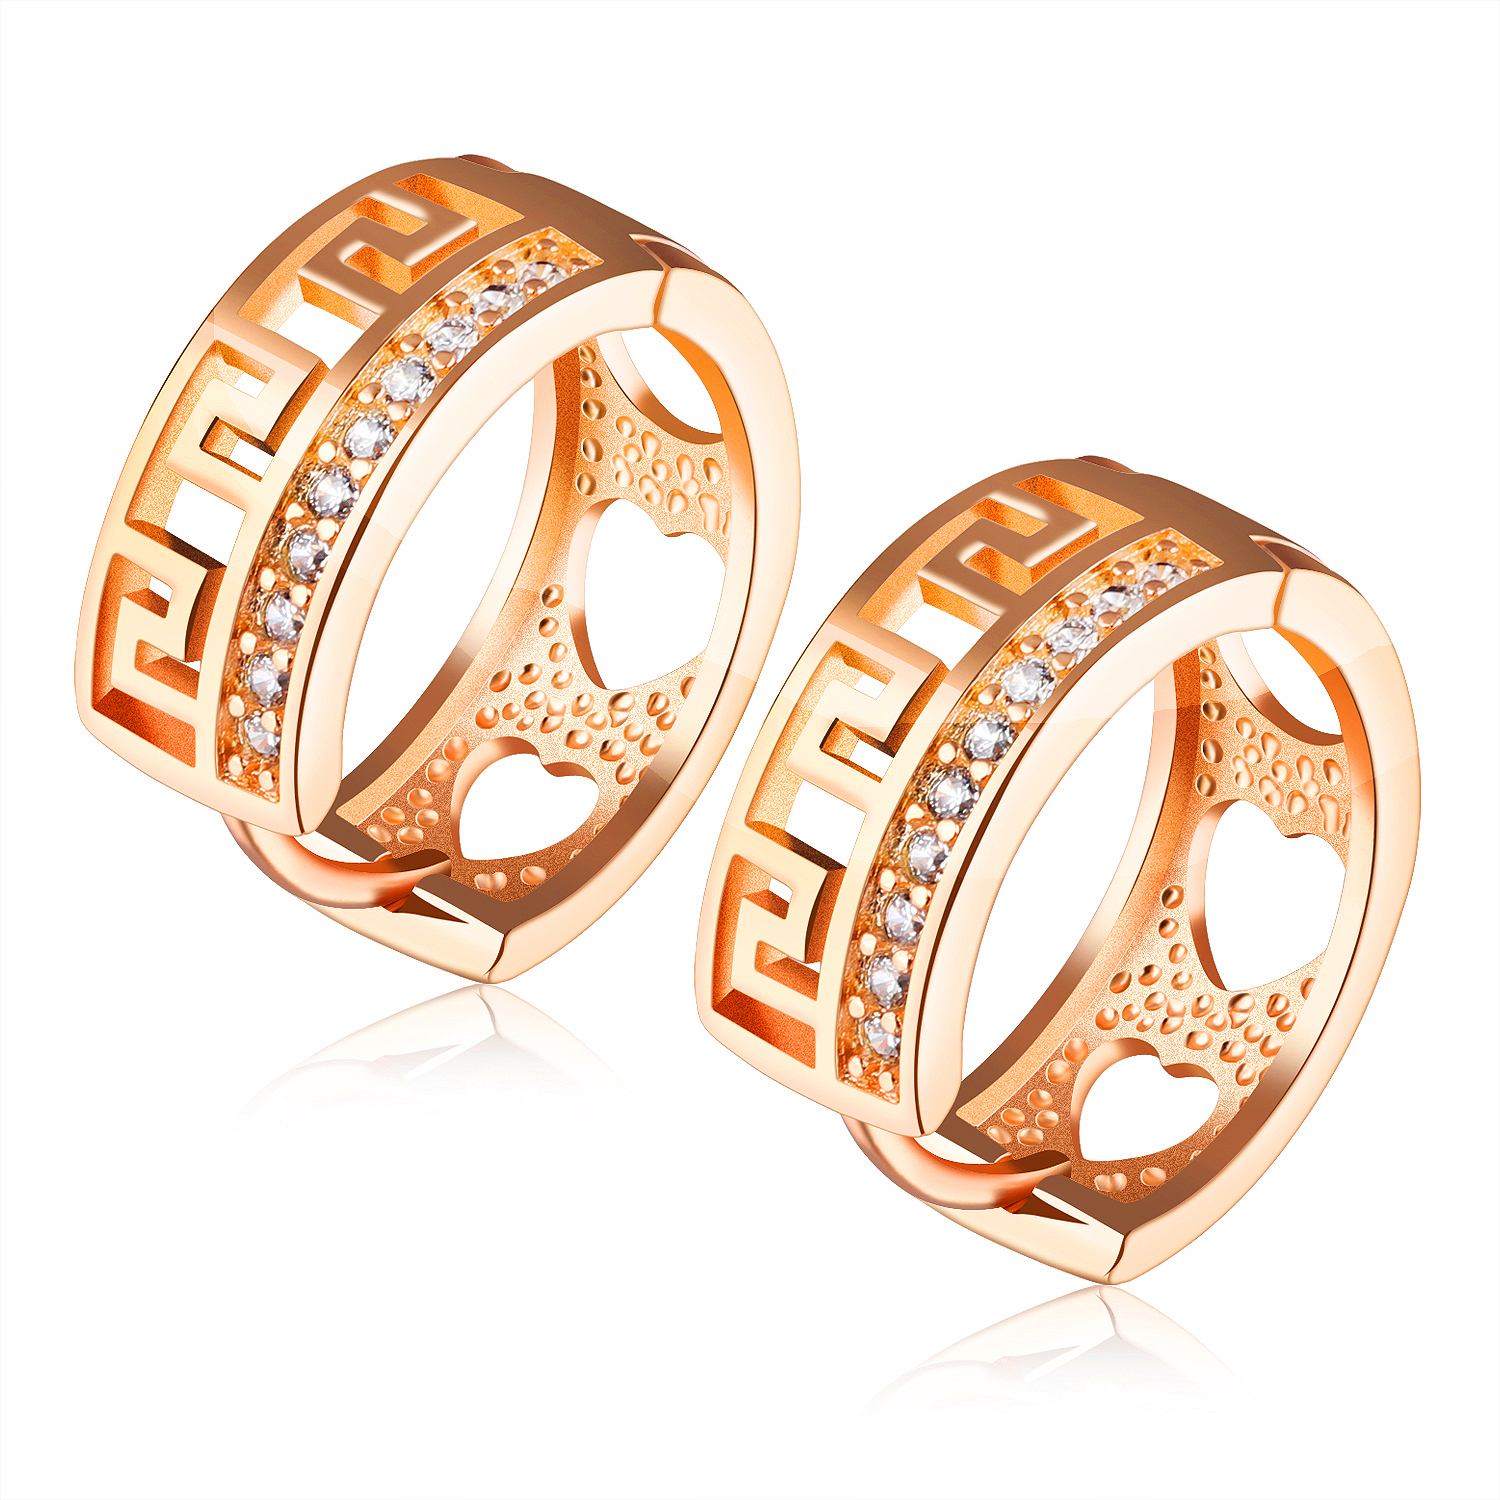 New Arrival Fashion Women Jewelry Delicate Accessories Rose Color Inlaid Cz Little  Hoop Earrings Gift For